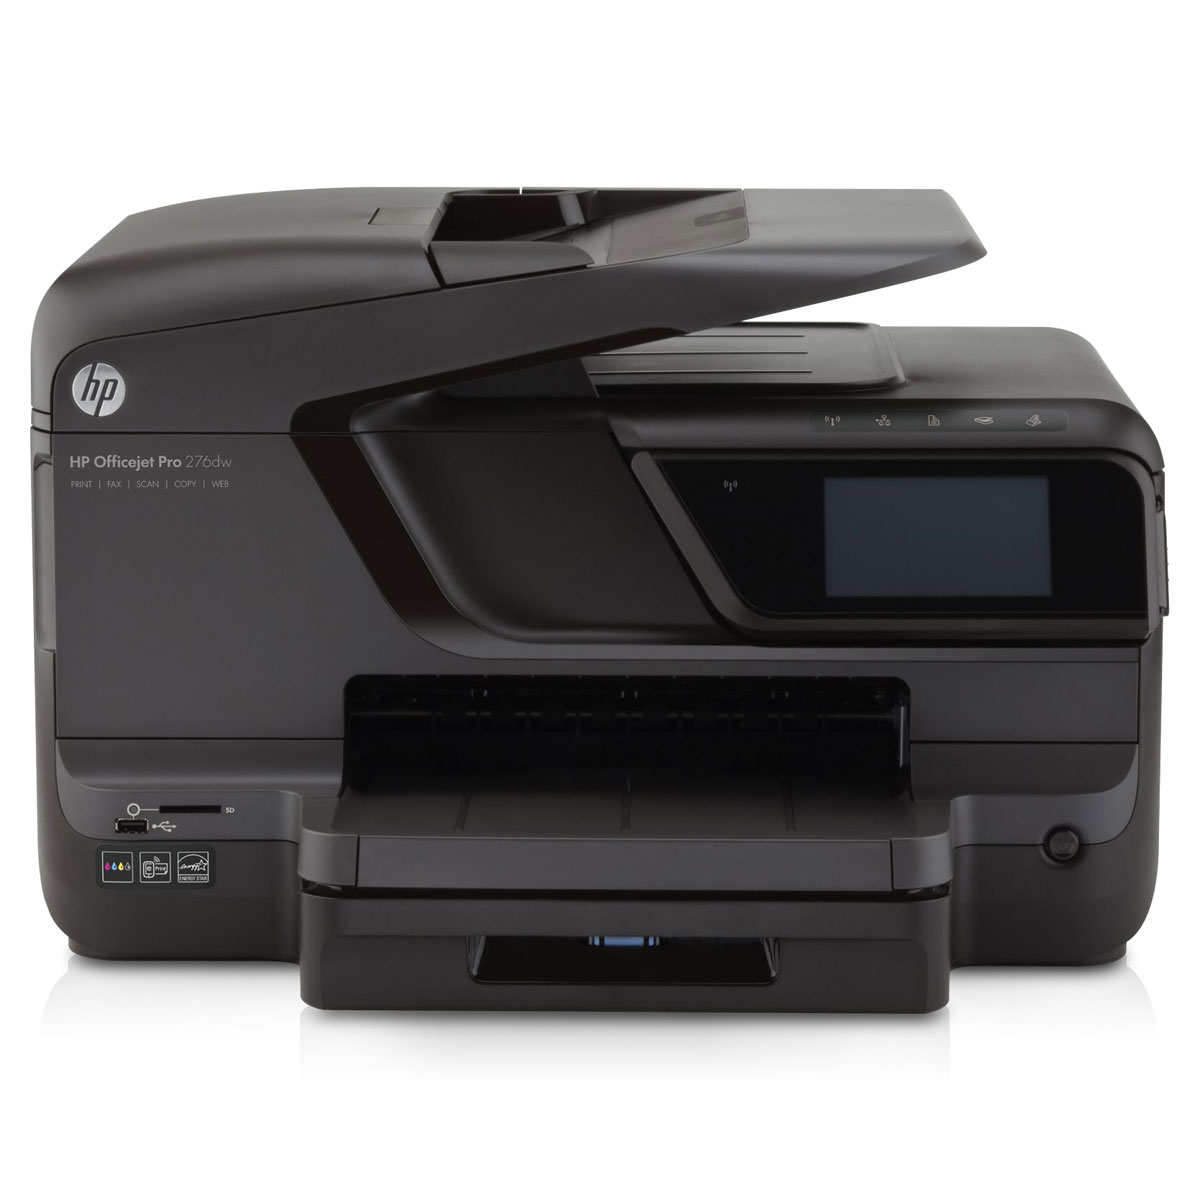 hp officejet pro 276dw cr770a imprimante multifonction. Black Bedroom Furniture Sets. Home Design Ideas